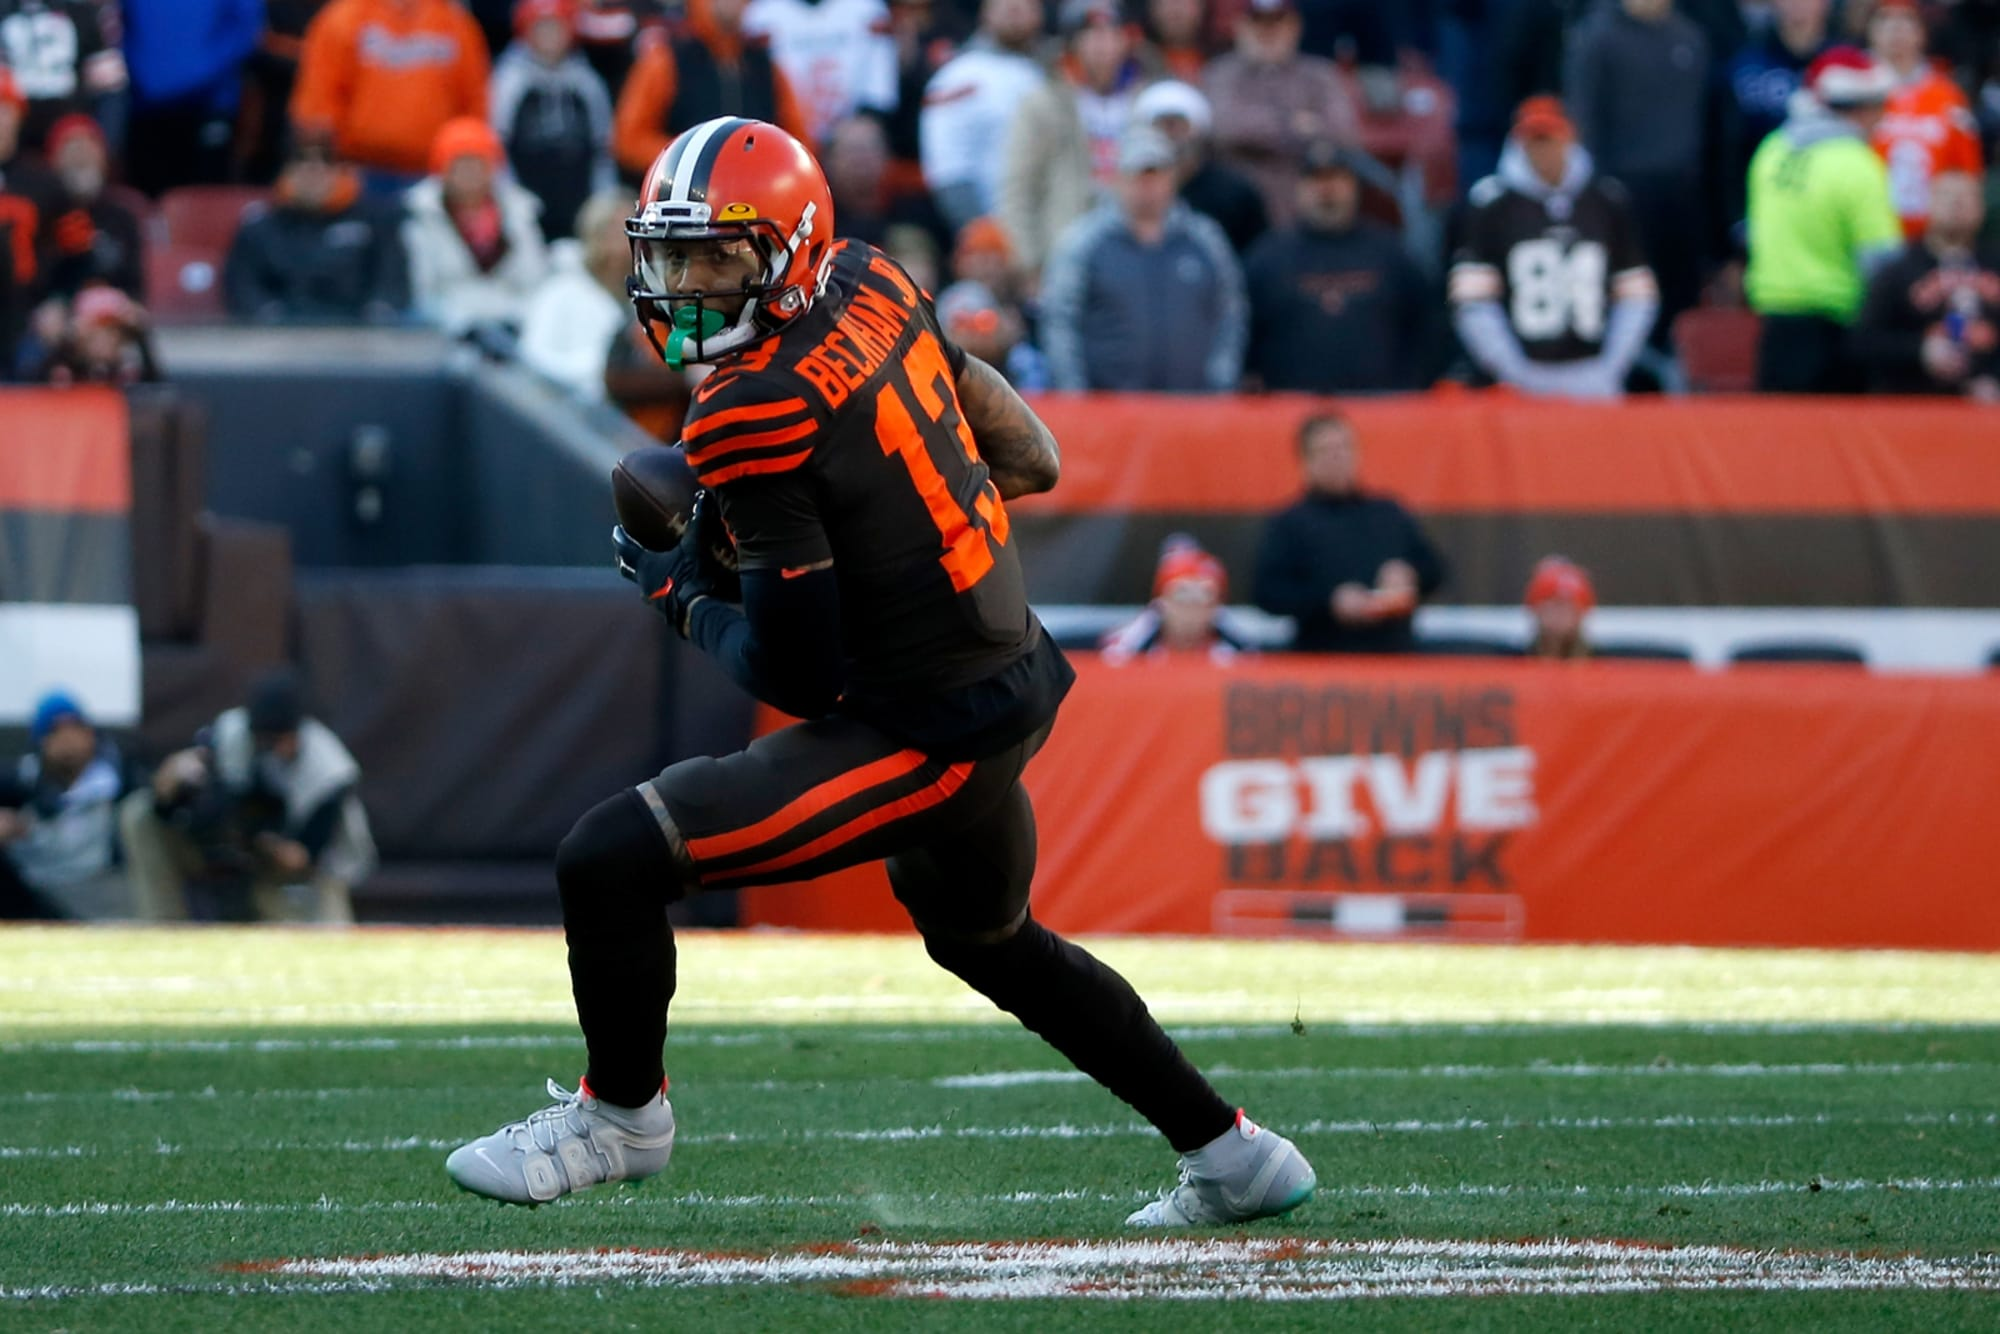 Cleveland Browns: Odell Beckham already off on the wrong foot